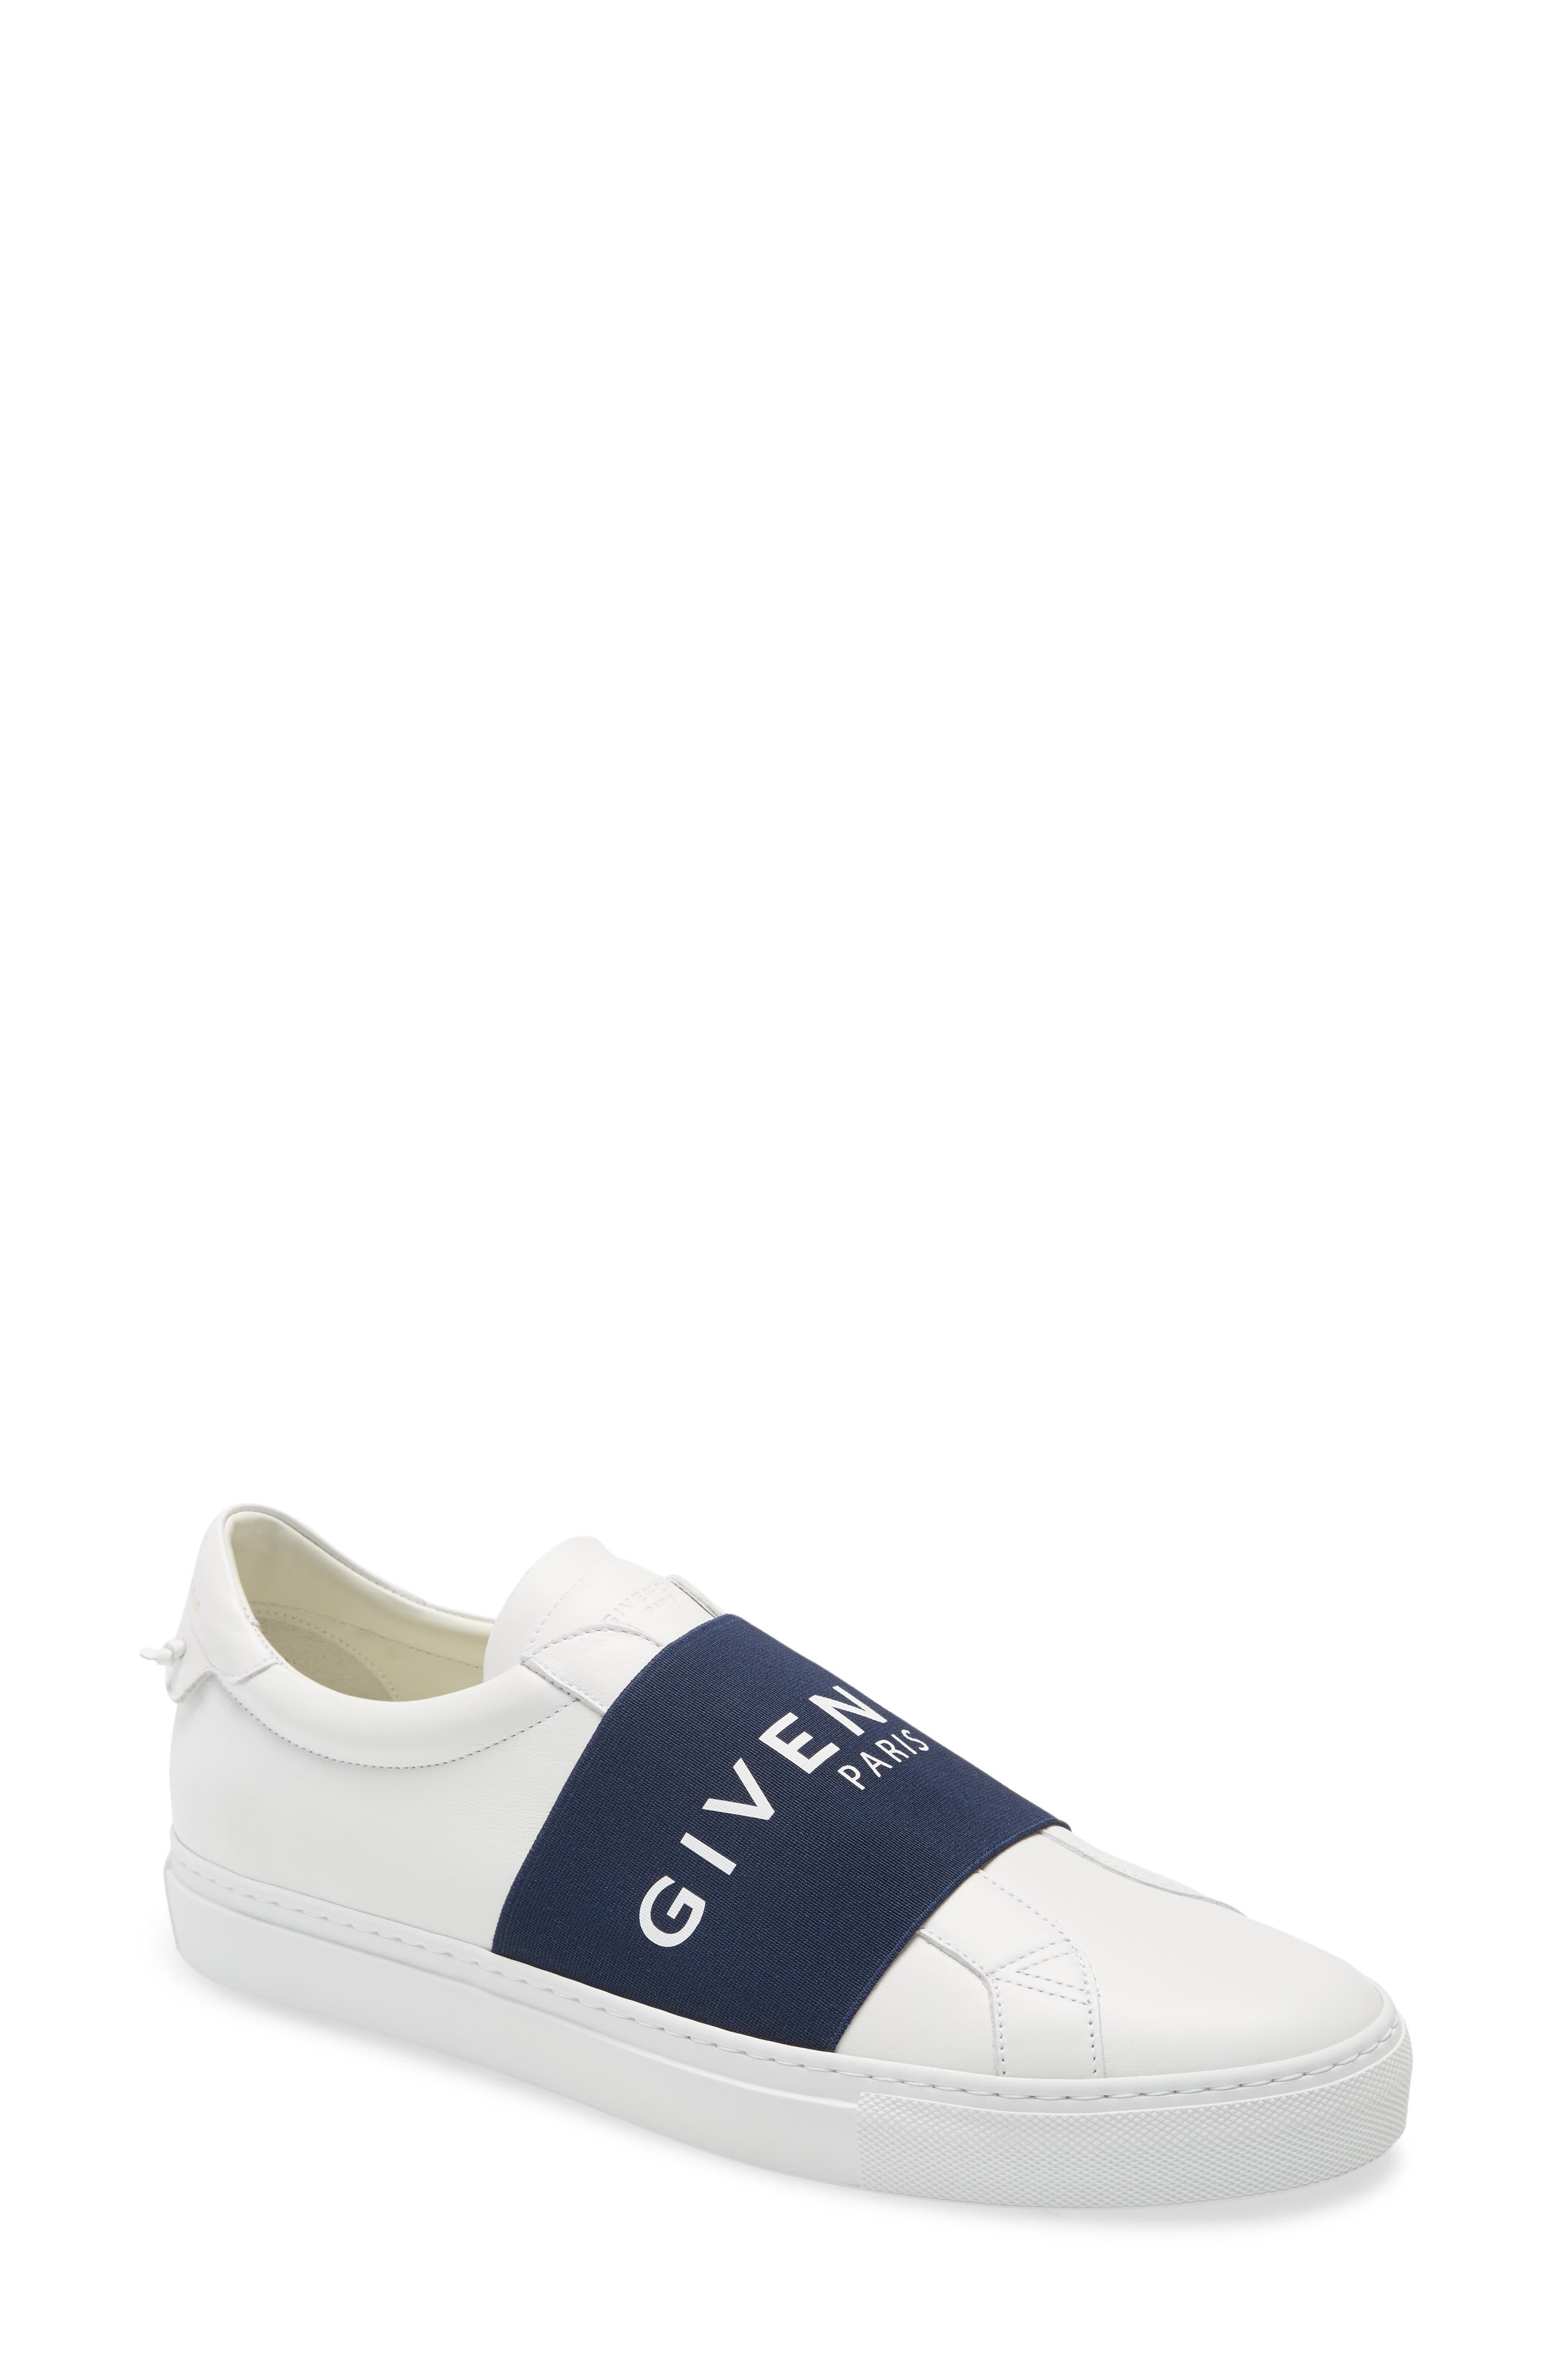 Men's Givenchy Shoes | Nordstrom